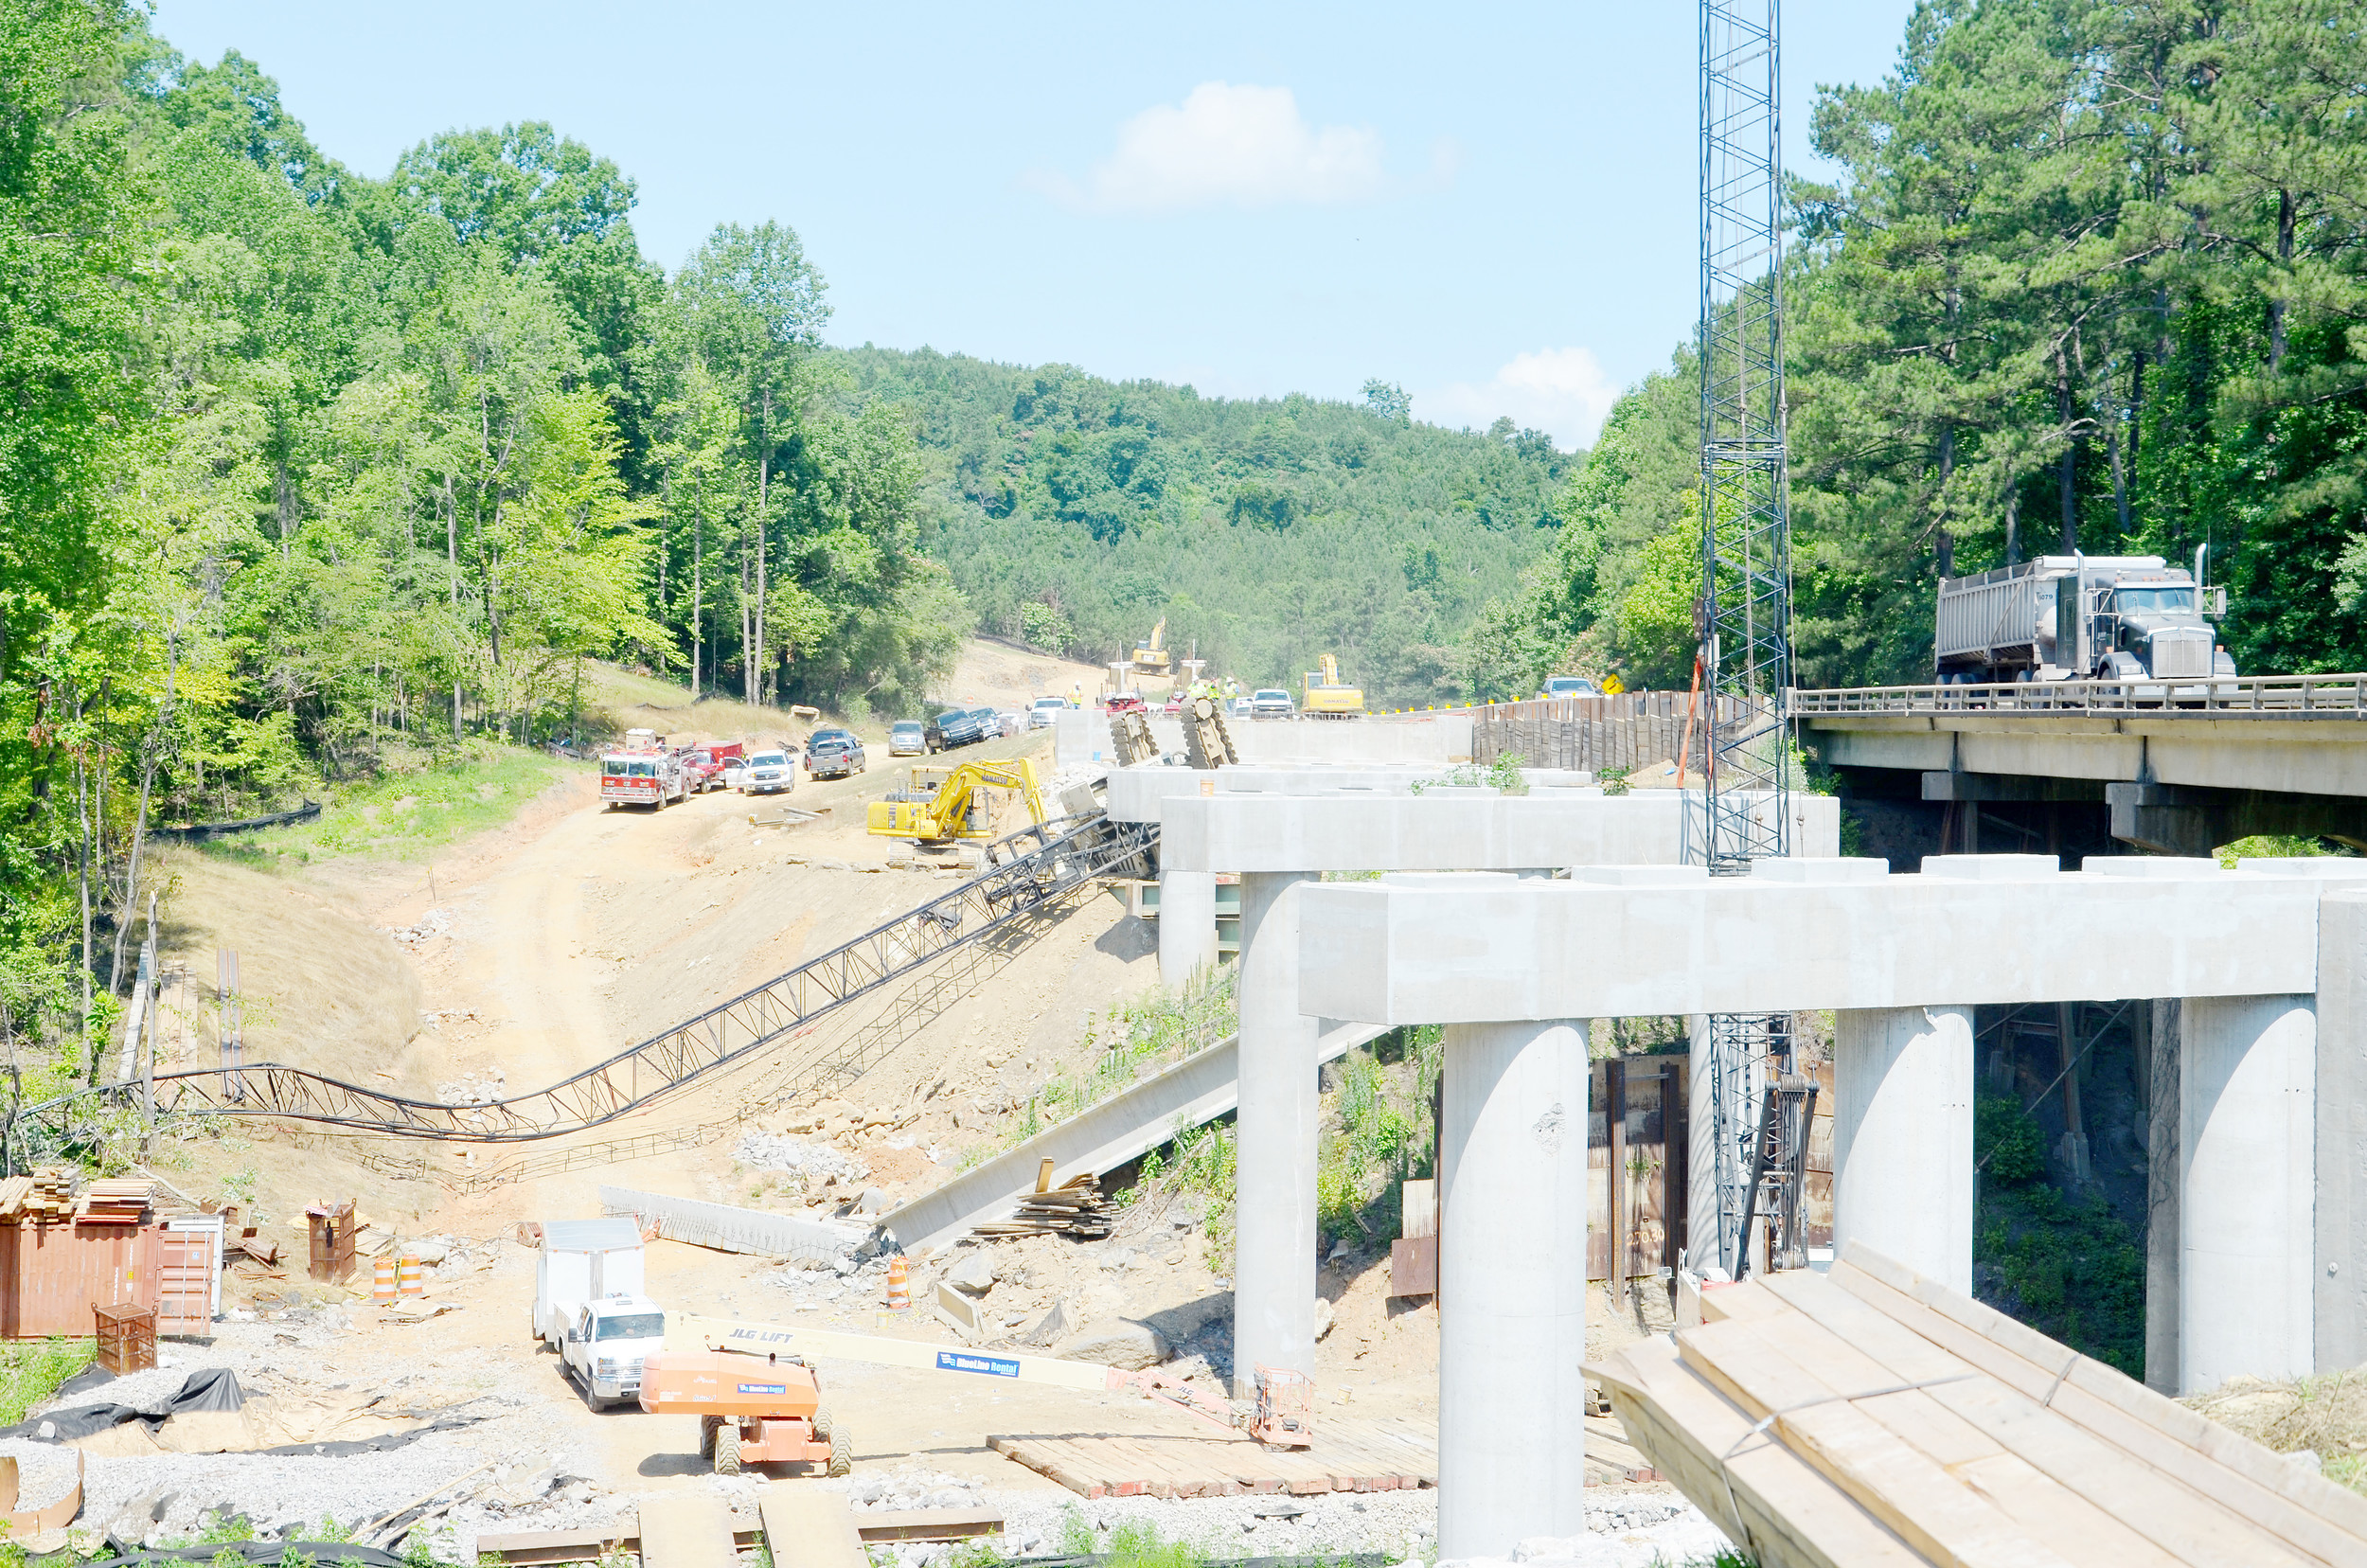 A�62-year-old man from Tarrant died Monday when the crane he was operating overturned at a construction site on Alabama Highway 269 near Gorgas Steam Plant. Daily Mountain Eagle - James Phillips